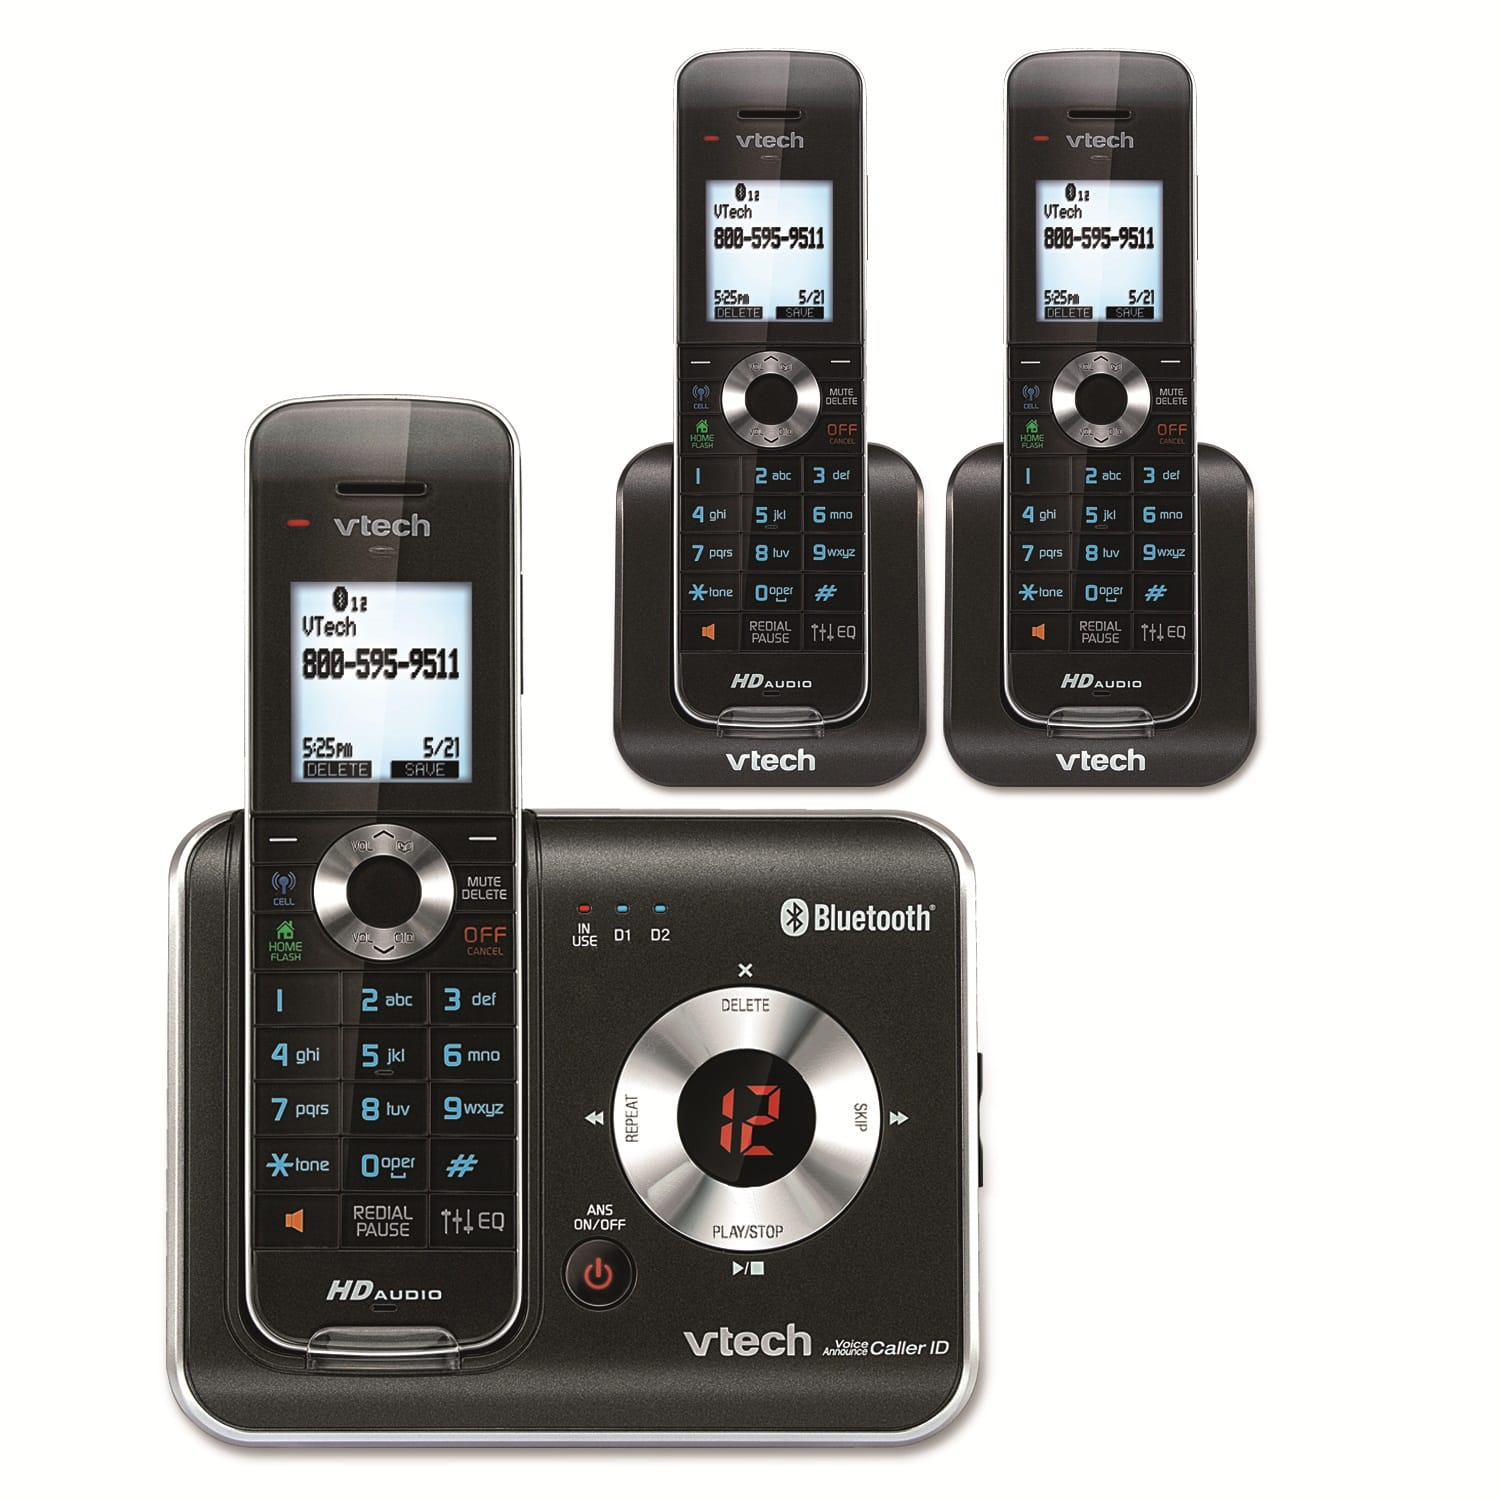 a house phone home phones way to stay connected at home 3 Handset Connect to Cell™ Answering System with Caller ID-Call Waiting